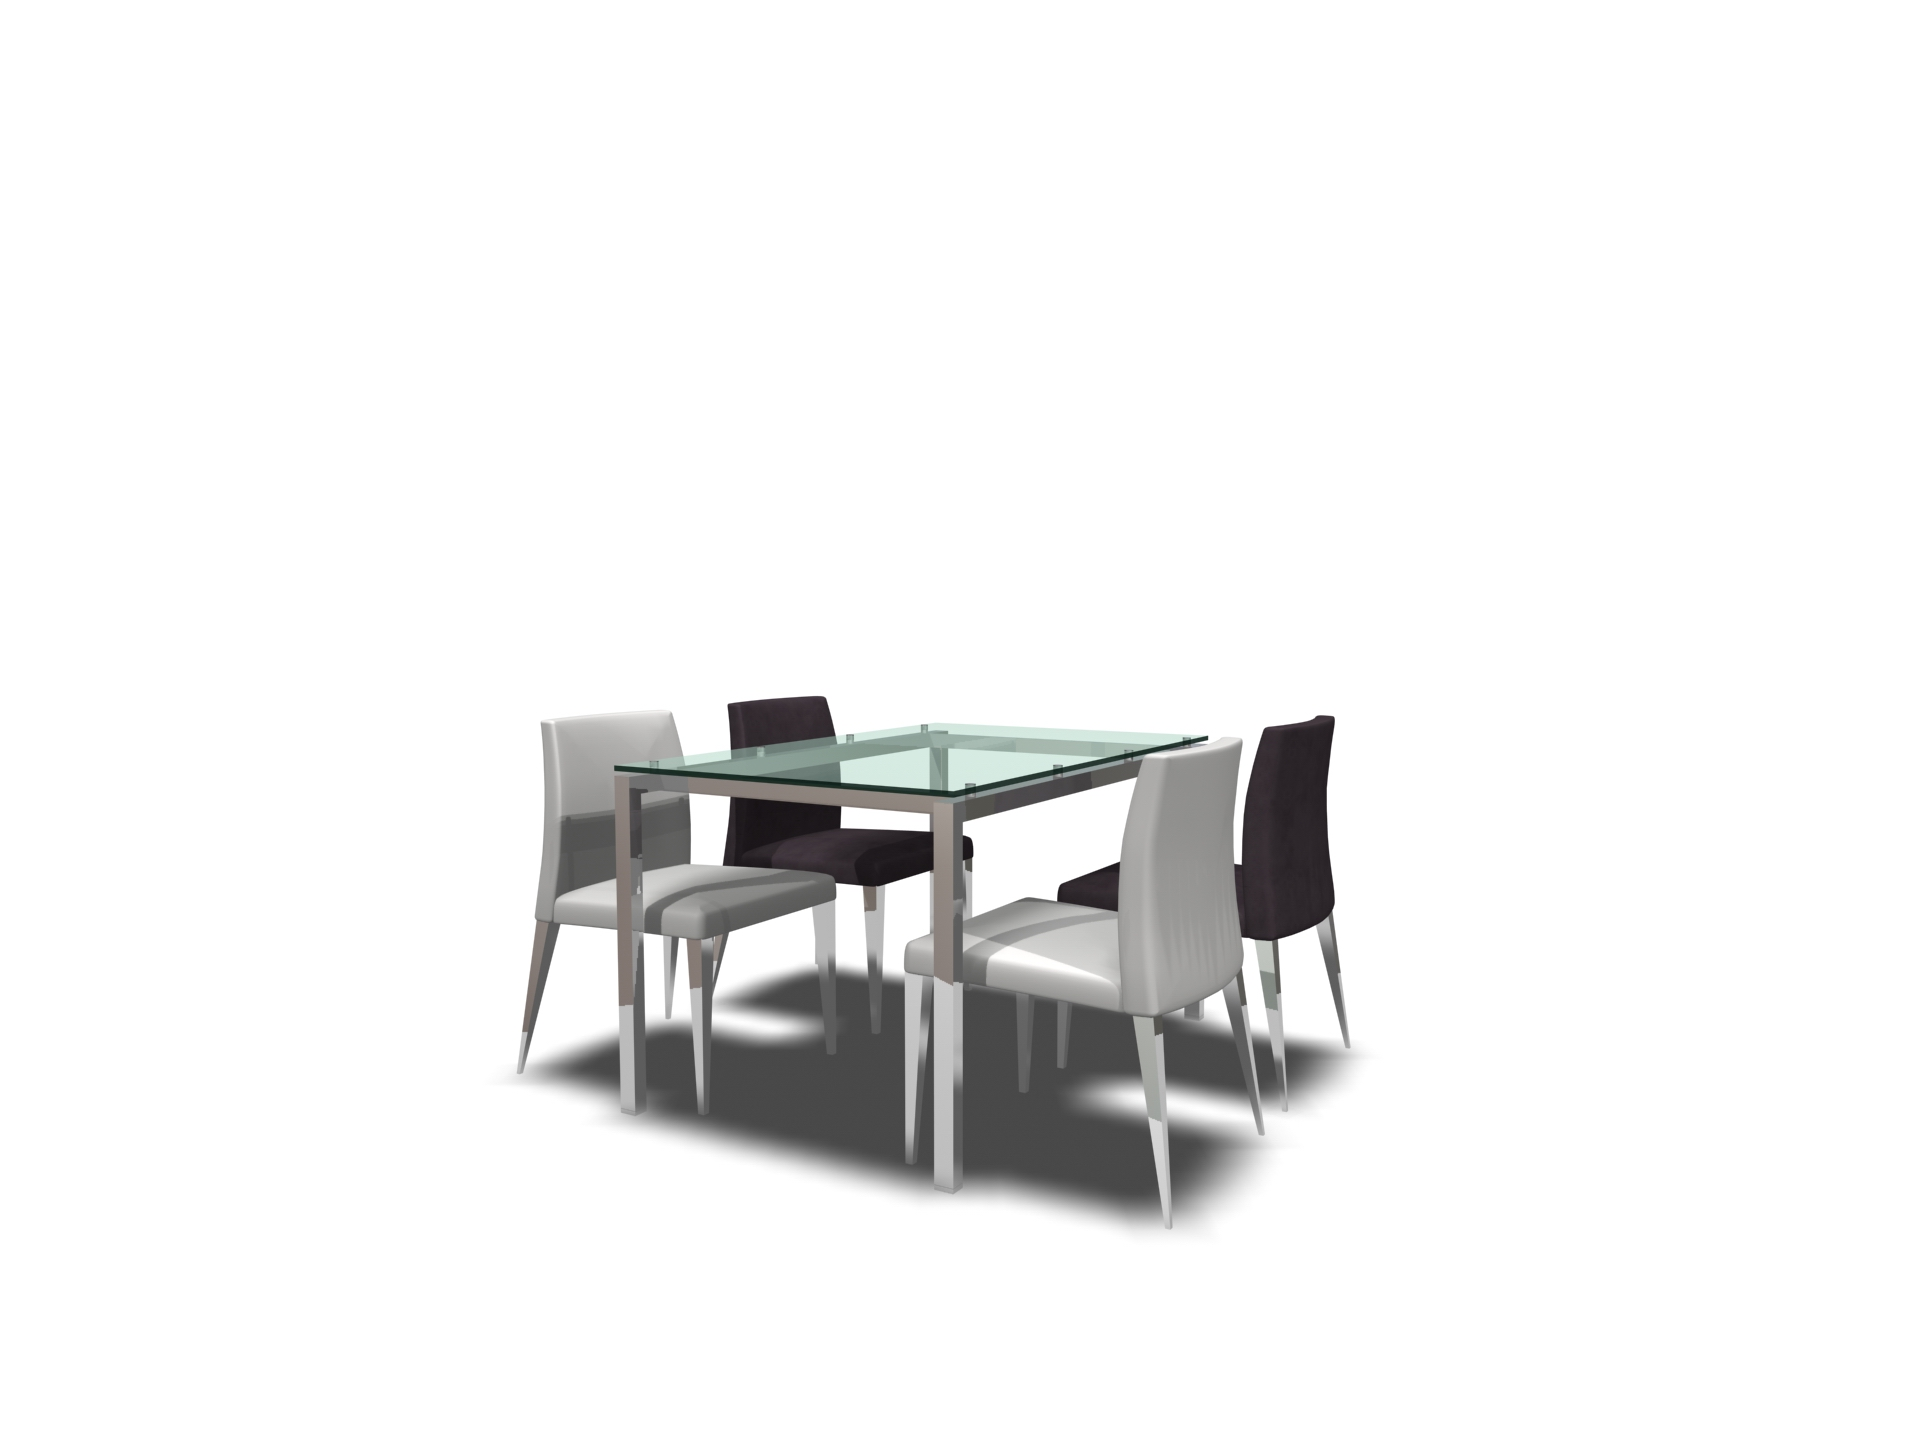 Furniture- table 008 – table 3D Model